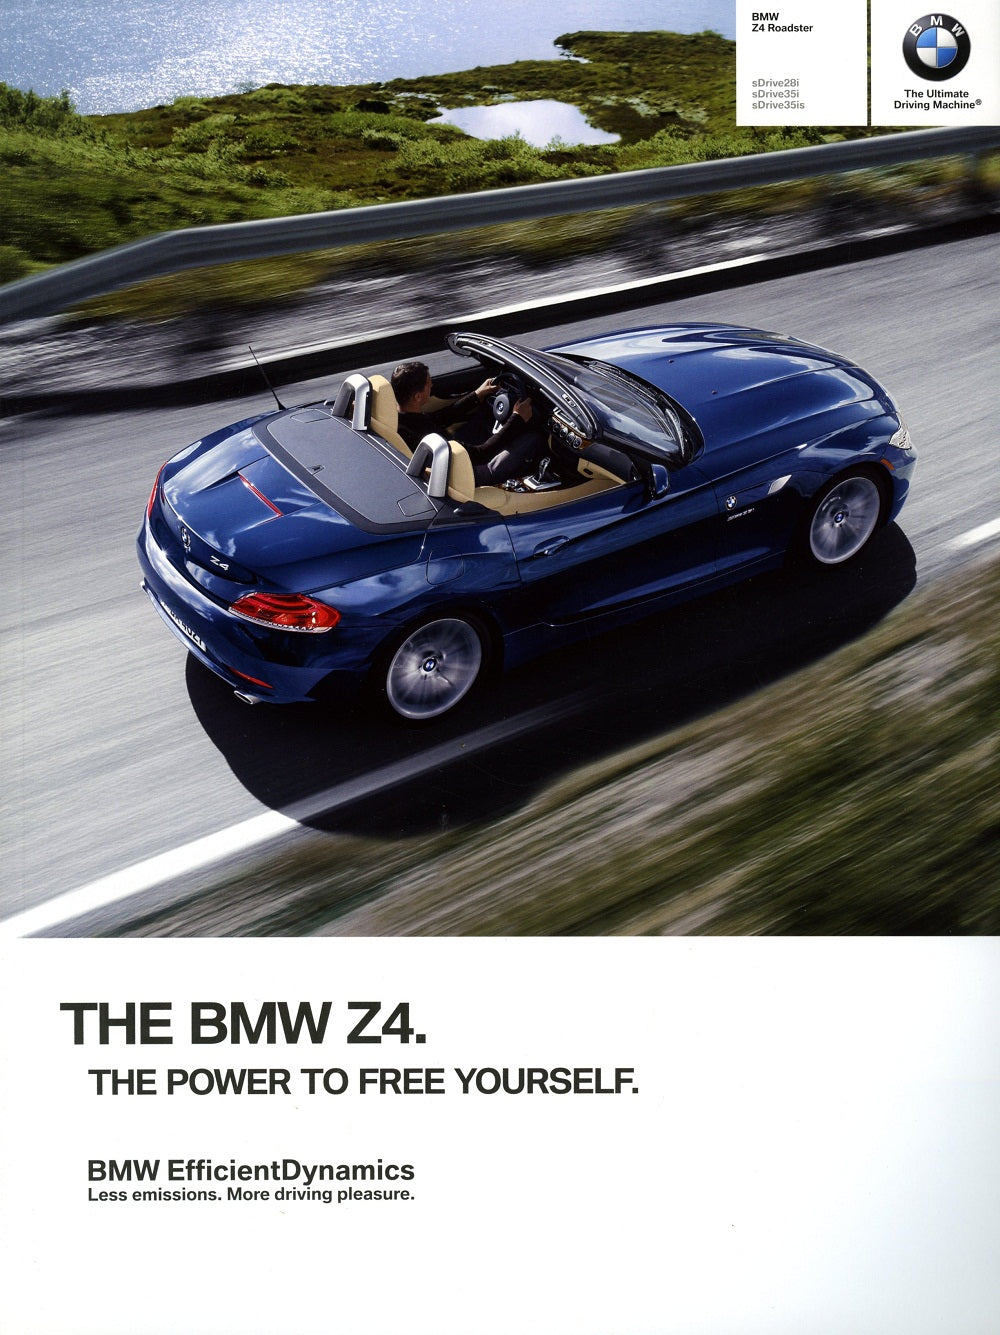 Brochure - BMW Z4 Roadster sDrive28i sDrive35i sDrive35is - 2012 E89 Brochure